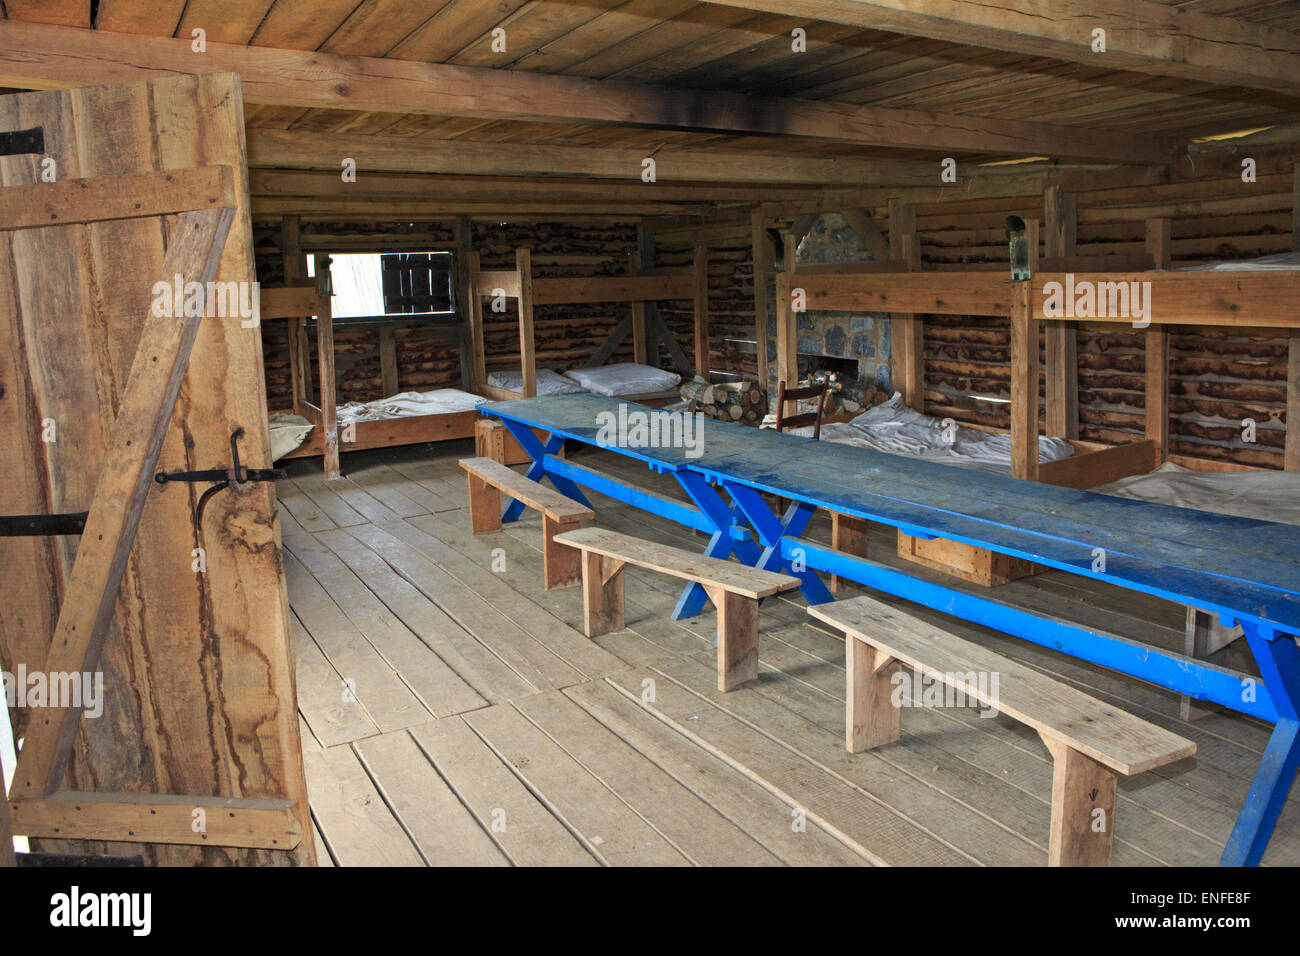 Blue table ,beds and furniture in the barracks at a Fort Loudoun State Park, historical French and Indian war site. - Stock Image